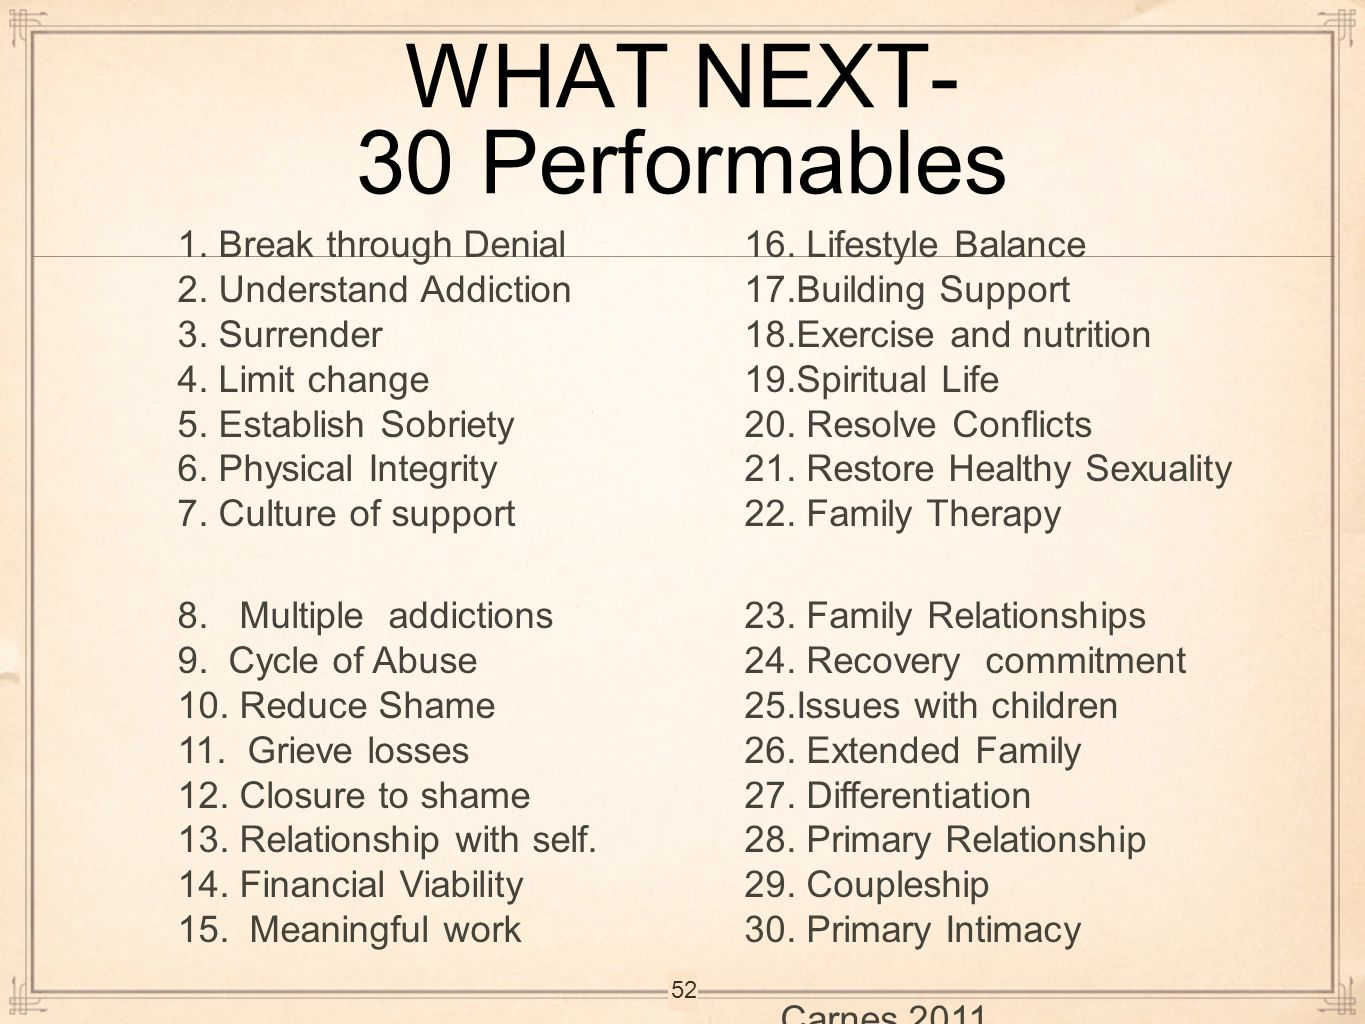 WHAT NEXT- 30 Performables